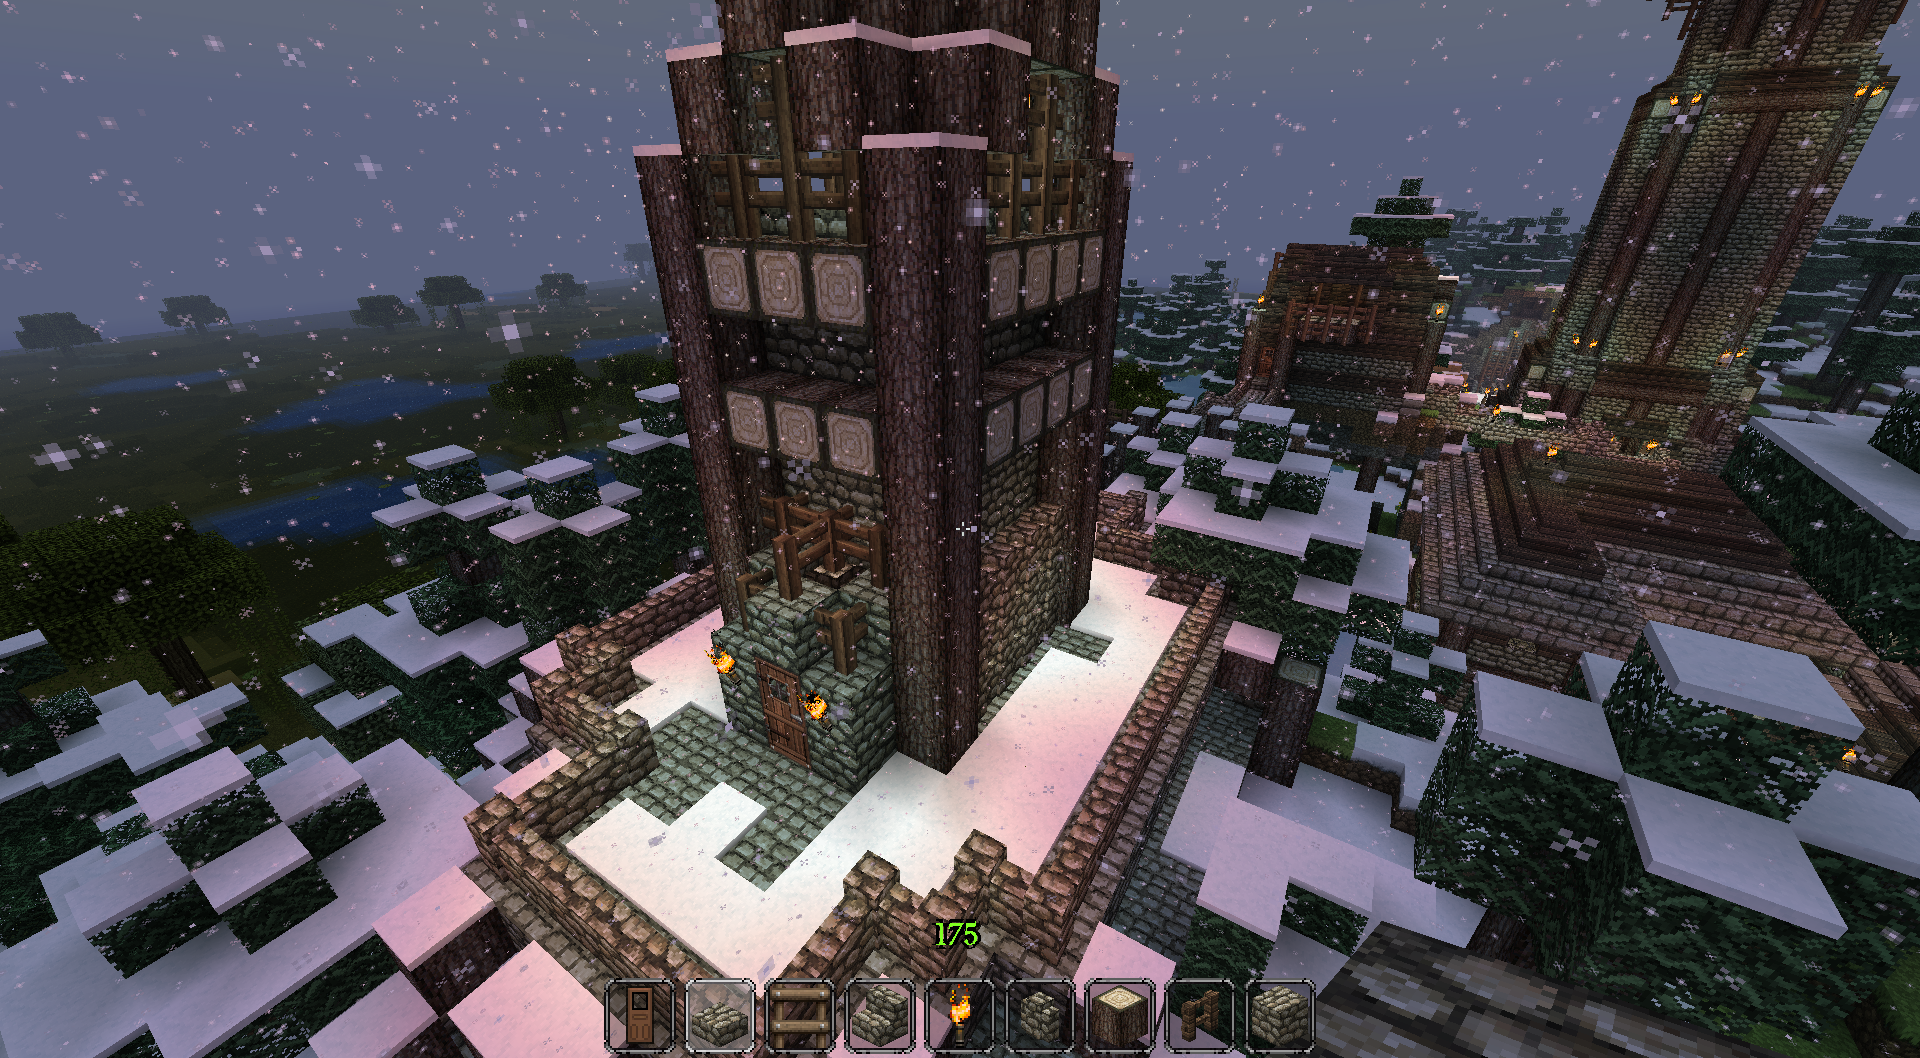 Part of a city build I was doing with two other buds.